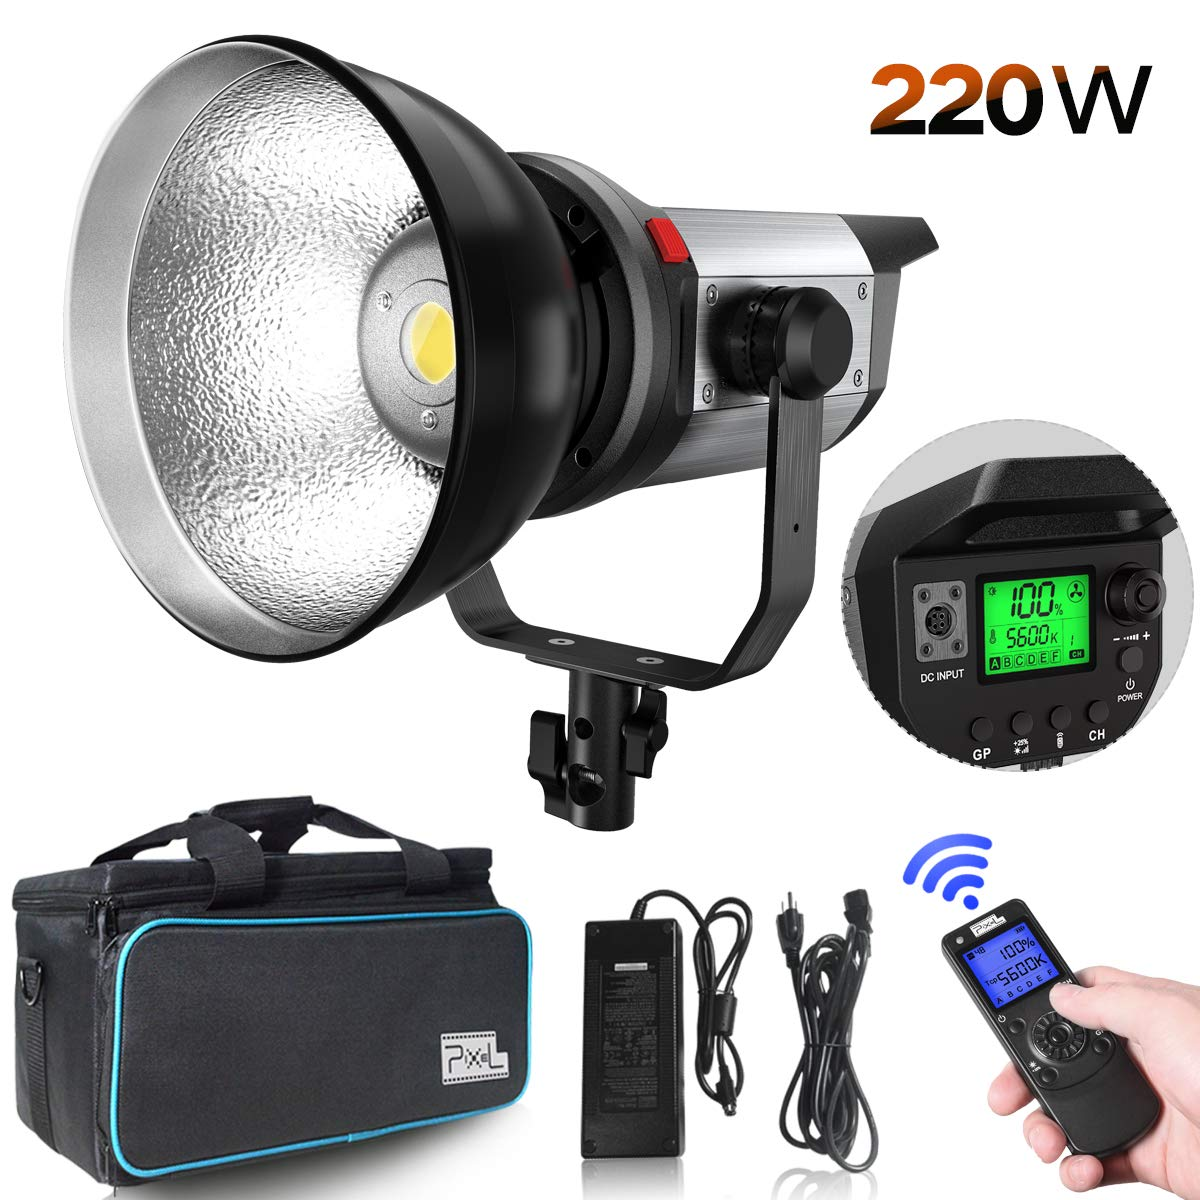 Pixel LED Video Light - 220W High Power Continuous Output Lighting 5600k with Bowens Mount, 66,000Lux@0.5m Support Group Control, 3 Lighting Effect, Auto Cooling Fan, Wireless Remote, CRI 97+ TLCI 99+ by PIXEL